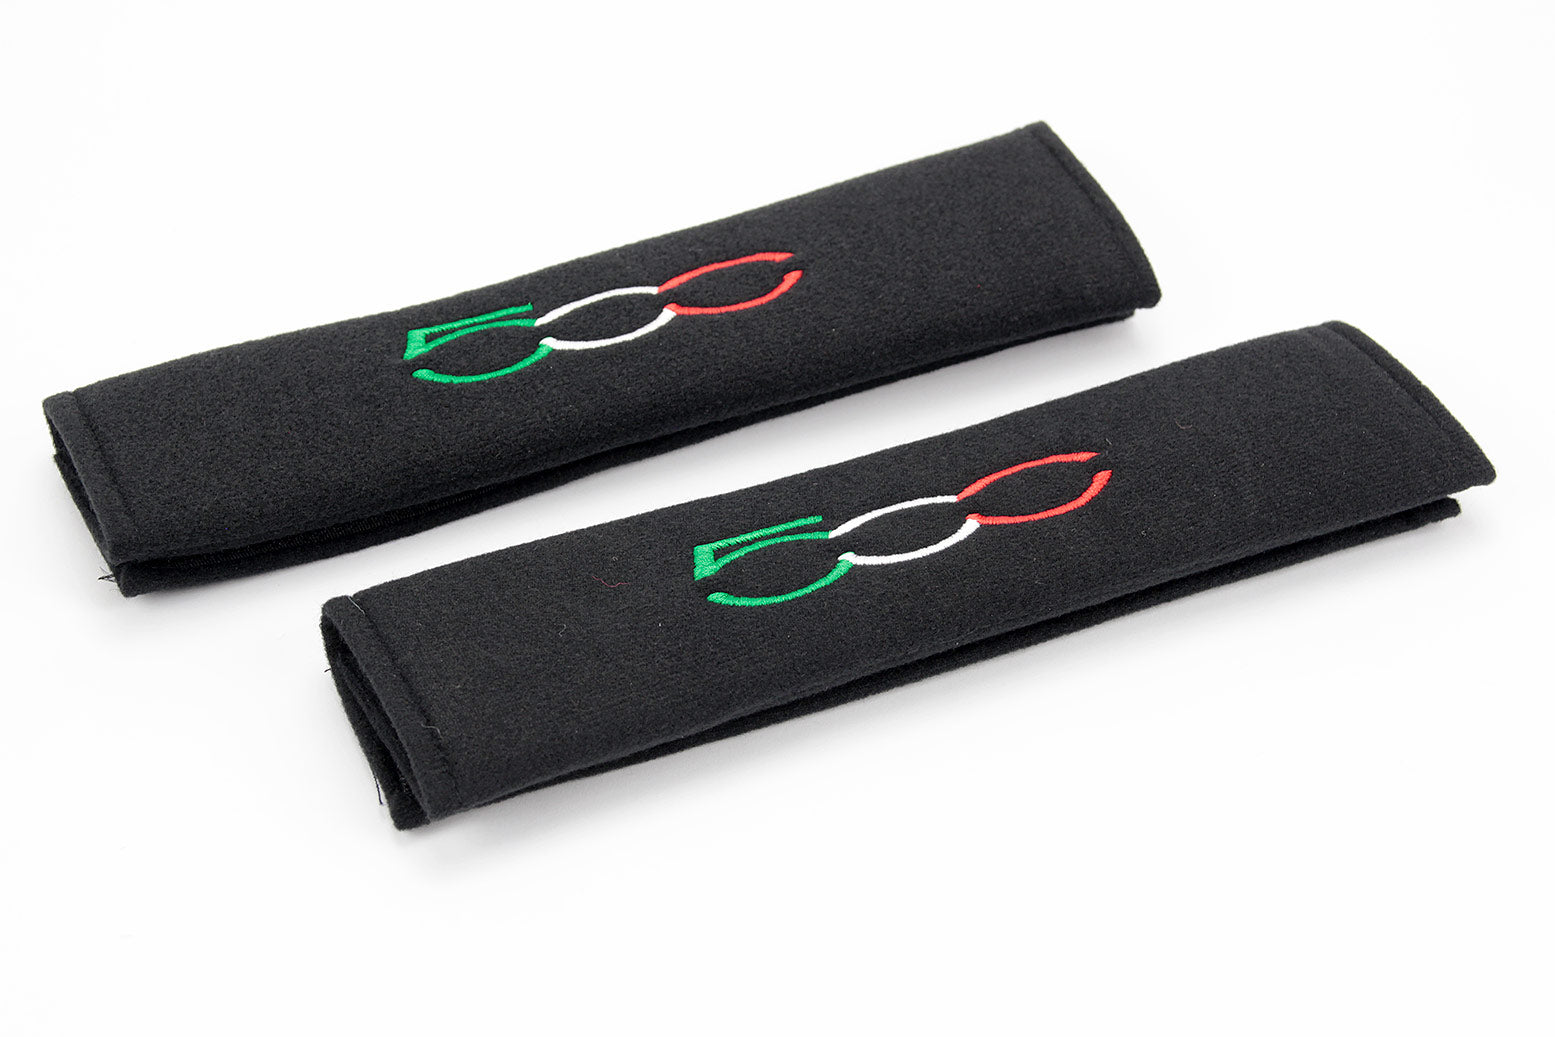 Fiat 500 logo embroidered on padded seat belt covers.